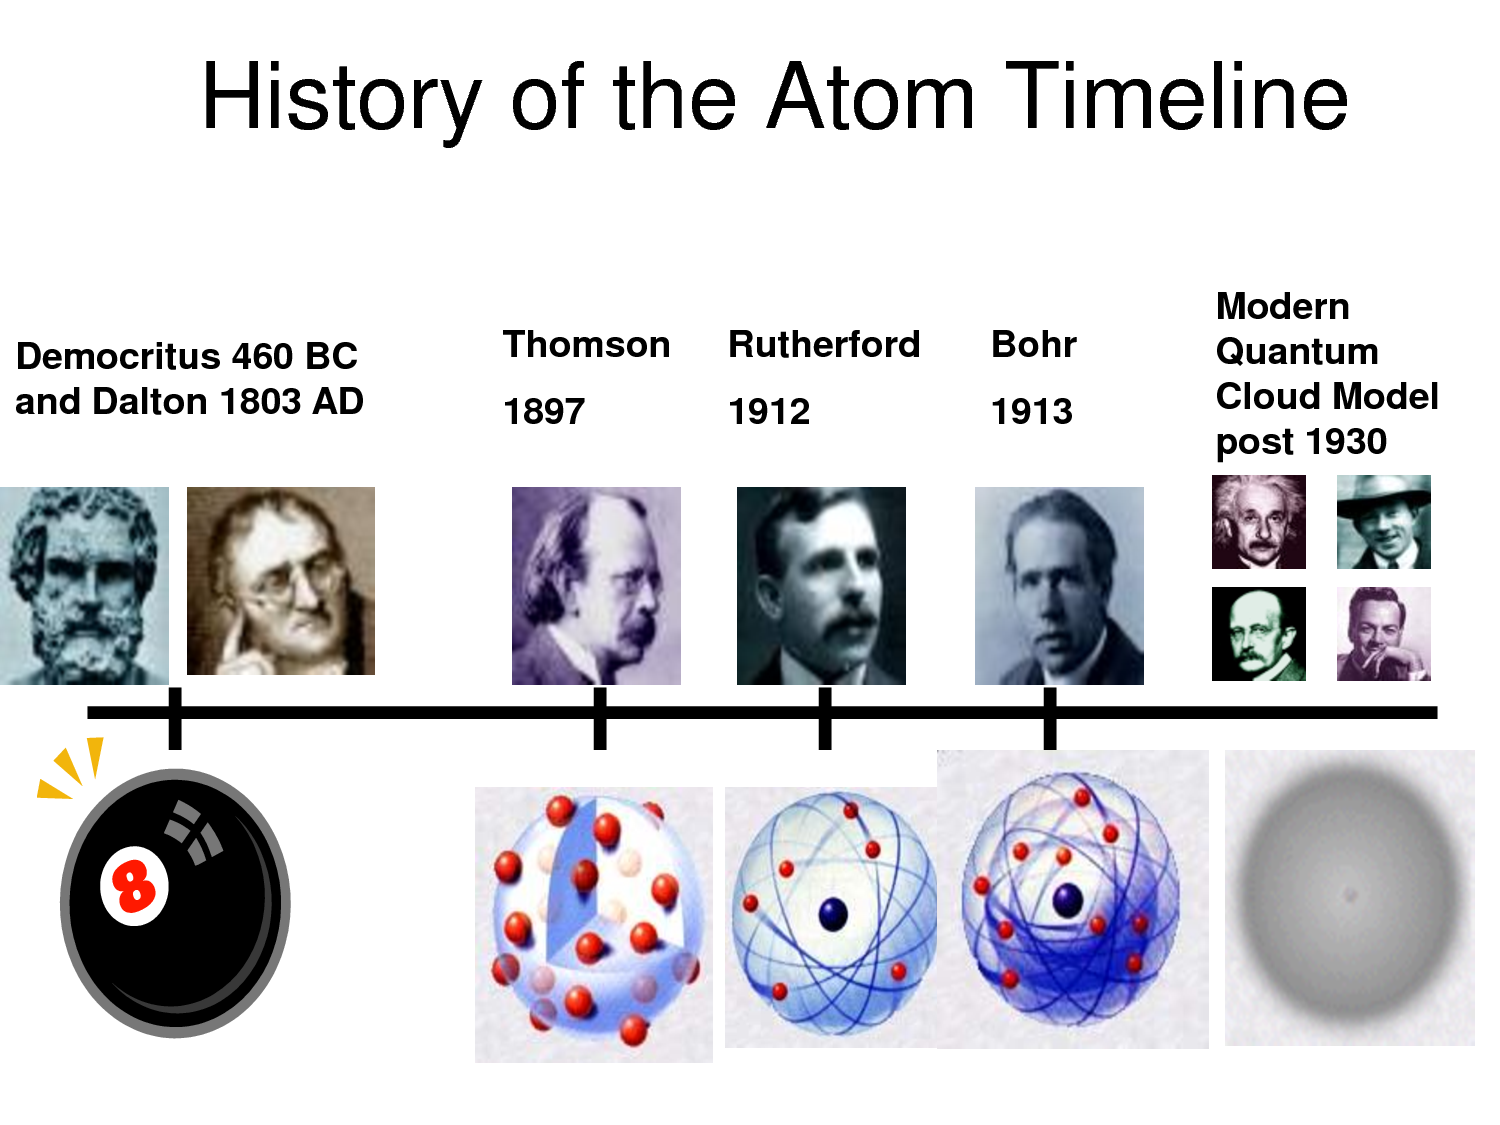 a history on the development of the atomic theory Atomic theory history of the discoveries related to the atom mr kendall 450 bc 1800 1897 1901 1910 1911 1913.